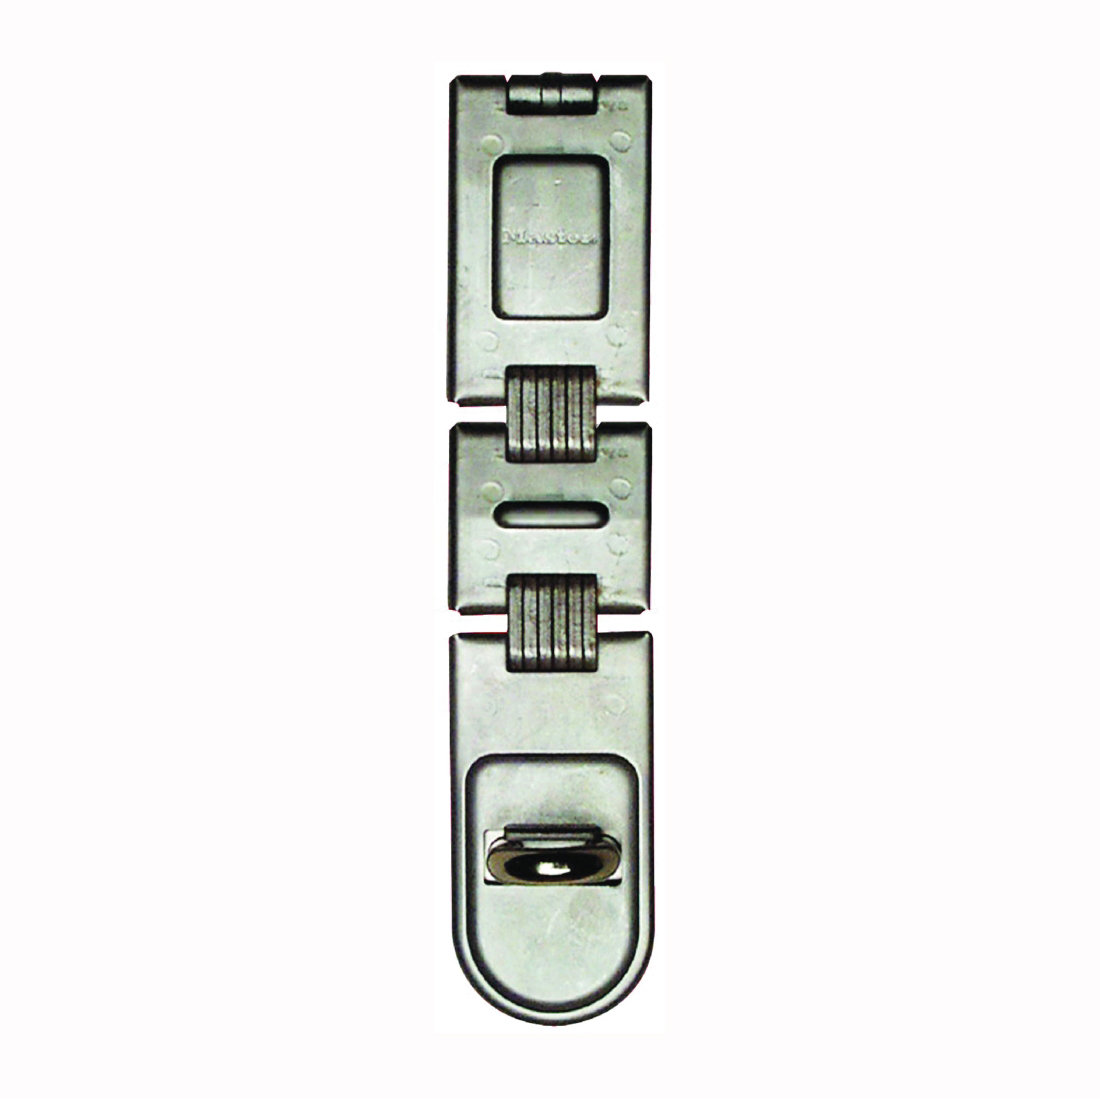 Picture of Master Lock 722DPF Latching Hasp, 7-3/4 in L, 11/16 in W, Steel, Zinc, 7/16 in Dia Shackle